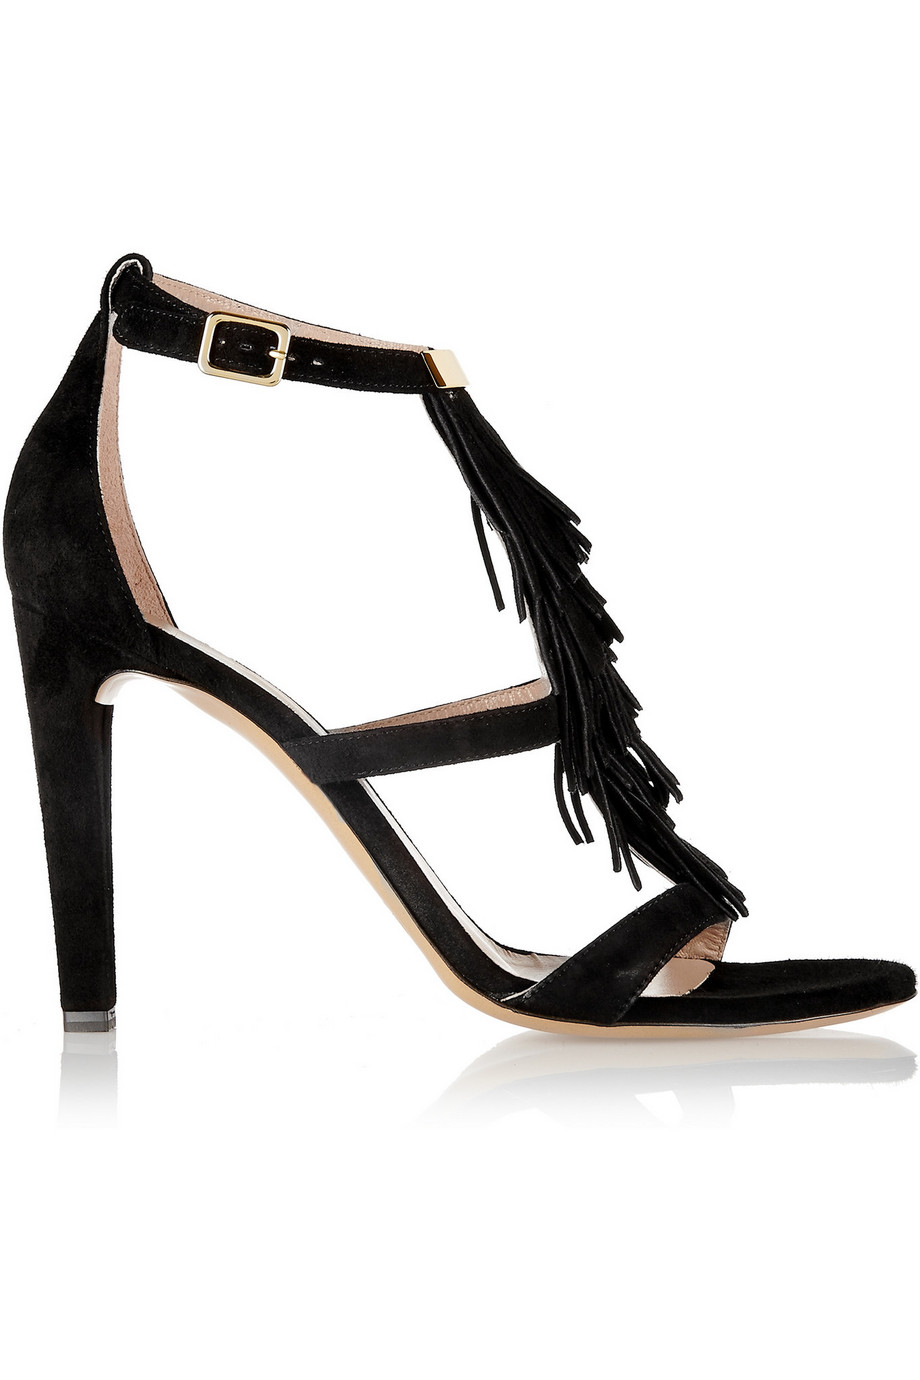 Chloé Fringed Suede Sandals, Black, Women's US Size: 3.5, Size: 34